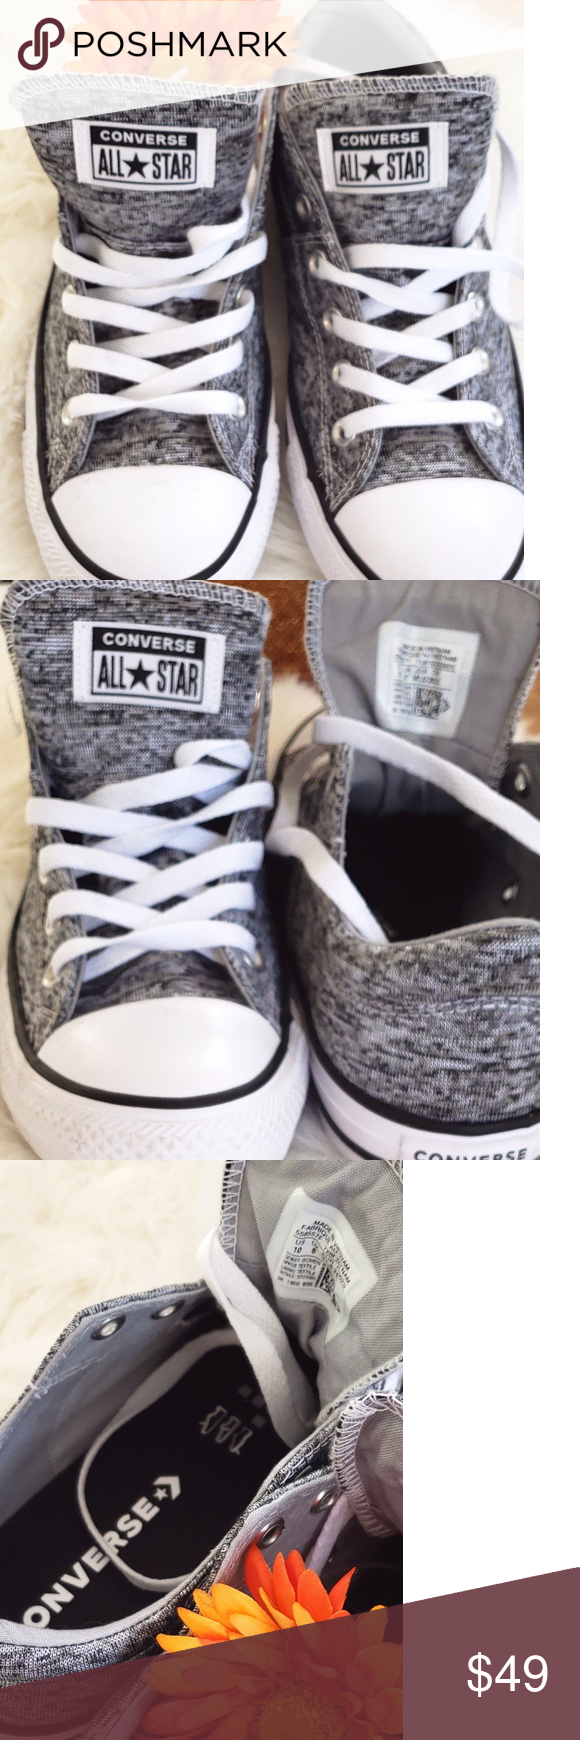 NEW Converse Sz 10 BlackGrayWhite New Womens Low Top